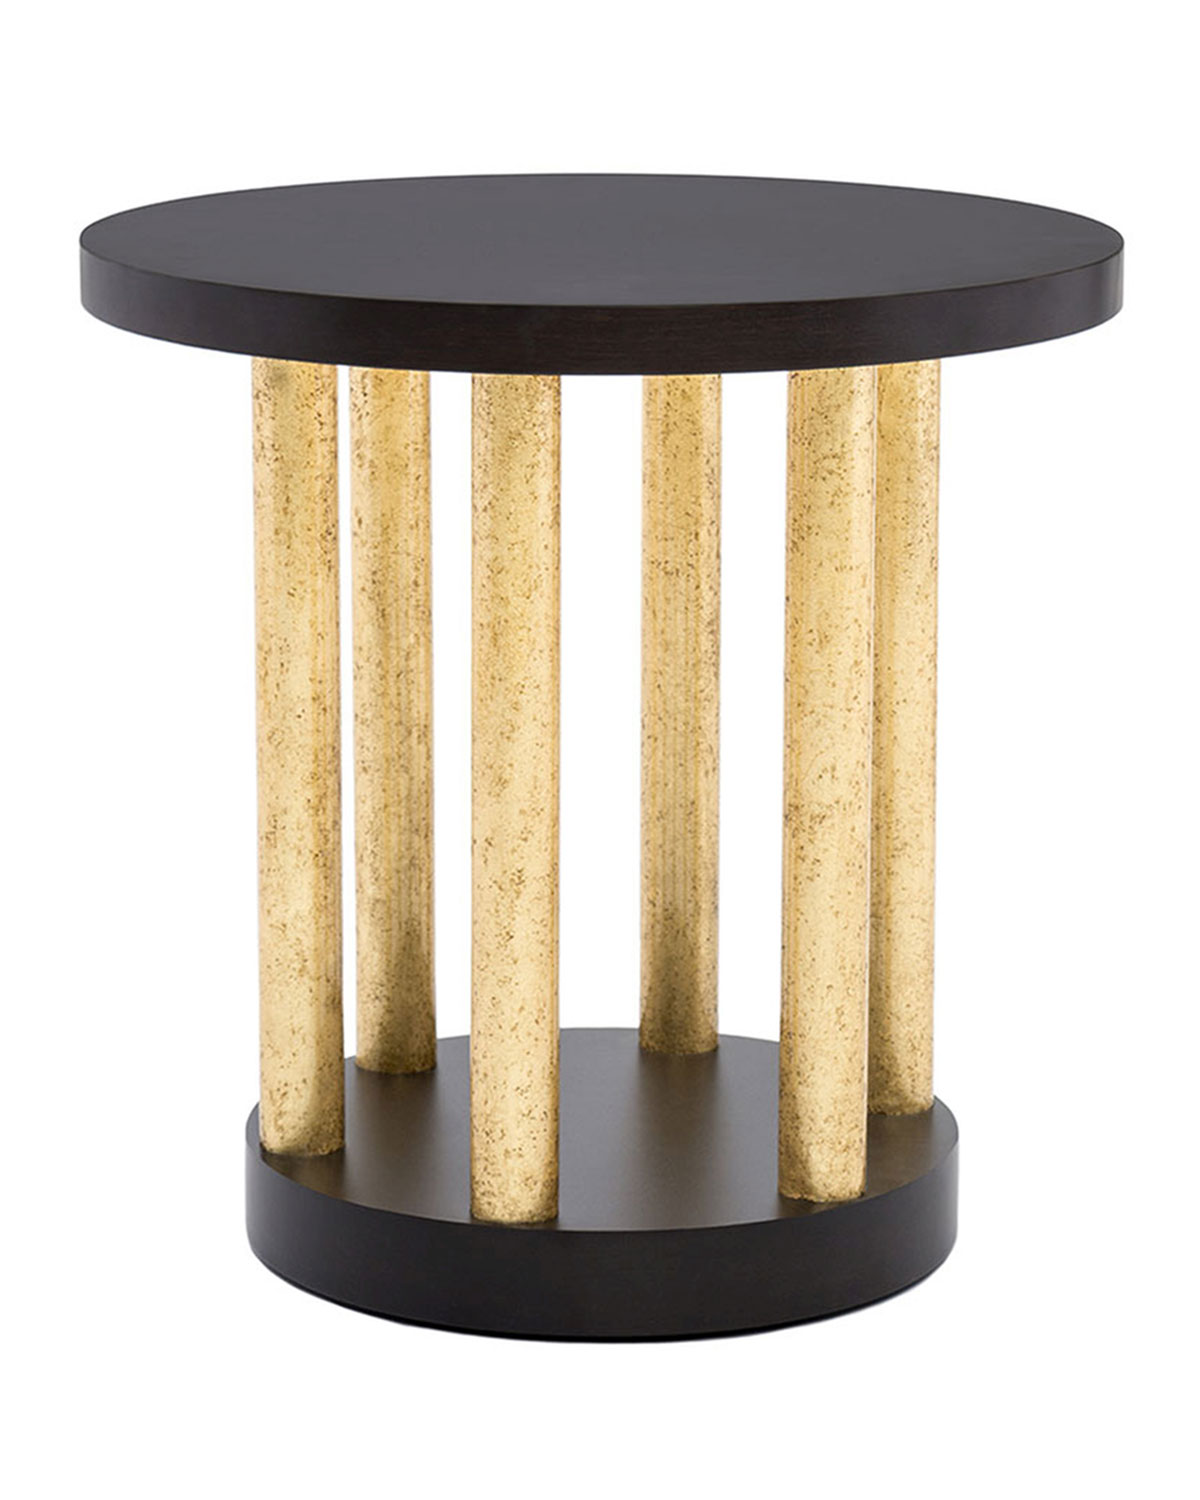 Innova Luxury Bel Air Accent Table